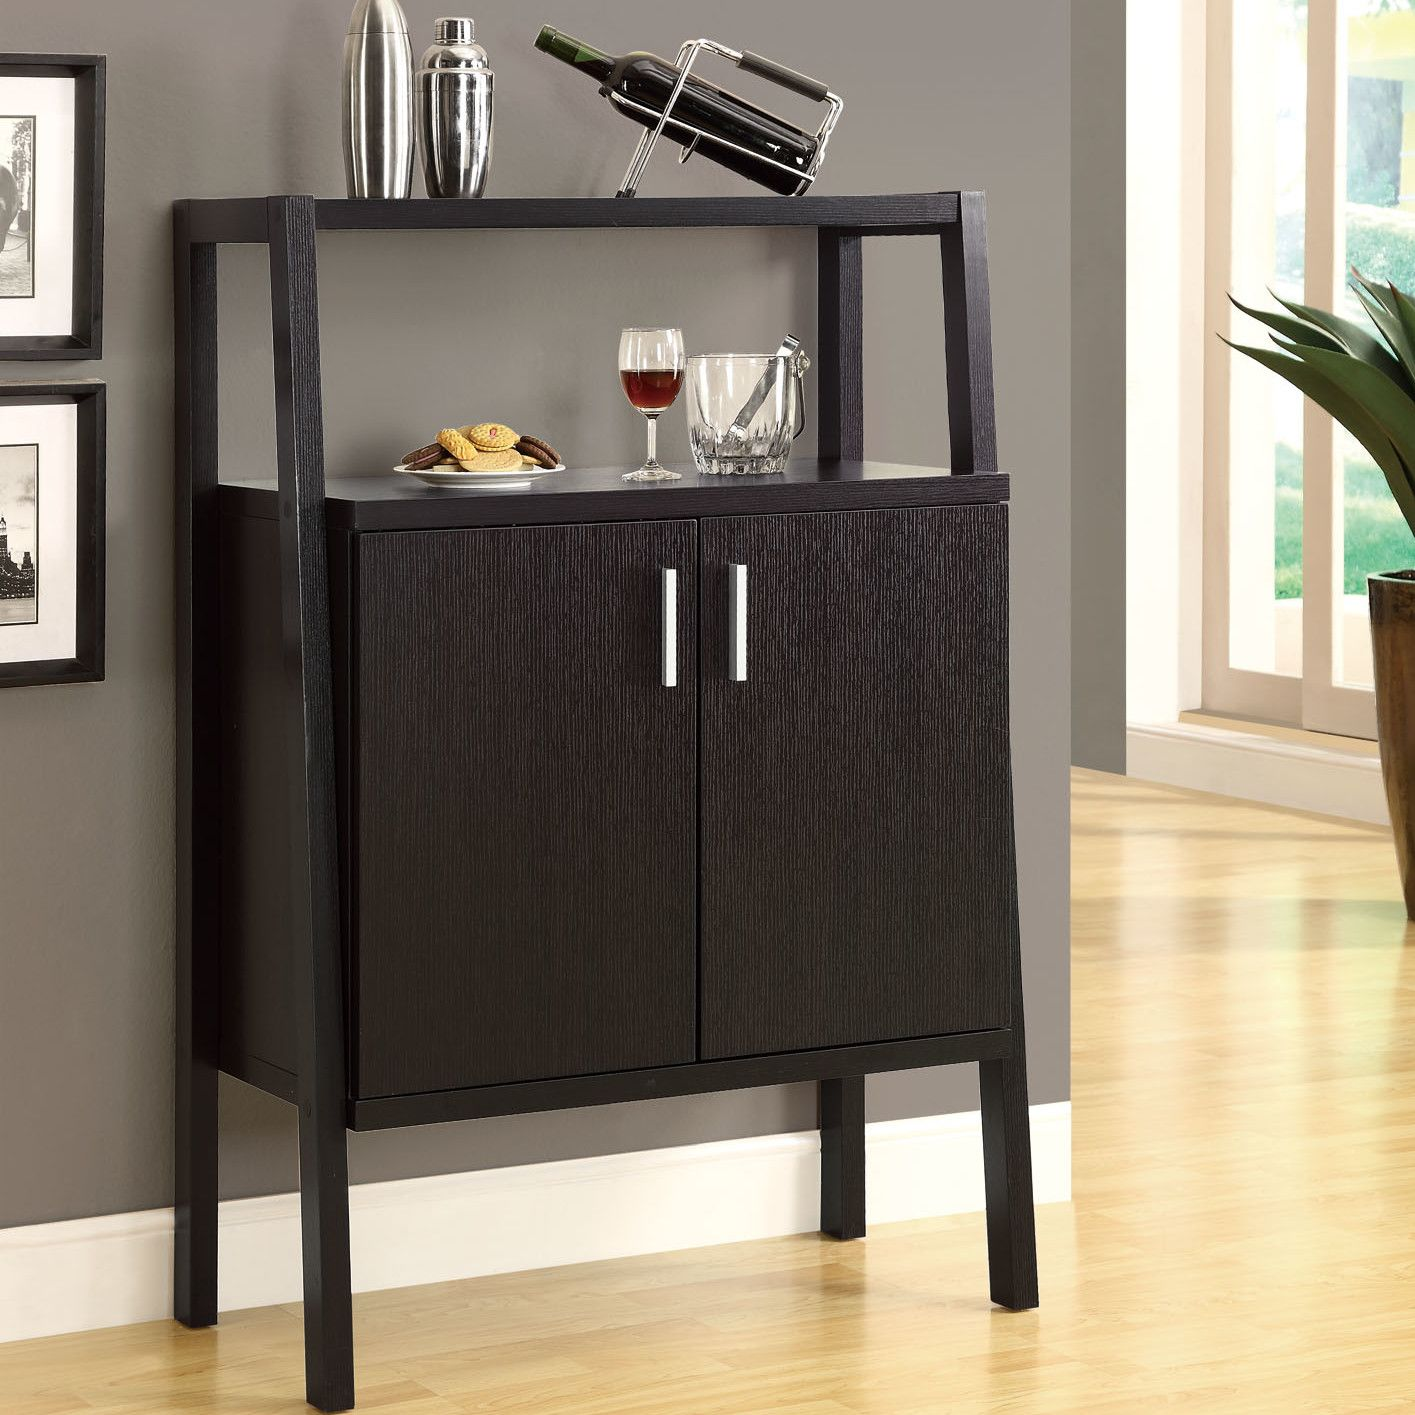 Bon Monarch Specialties Inc. Bar Cabinet With Wine Storage